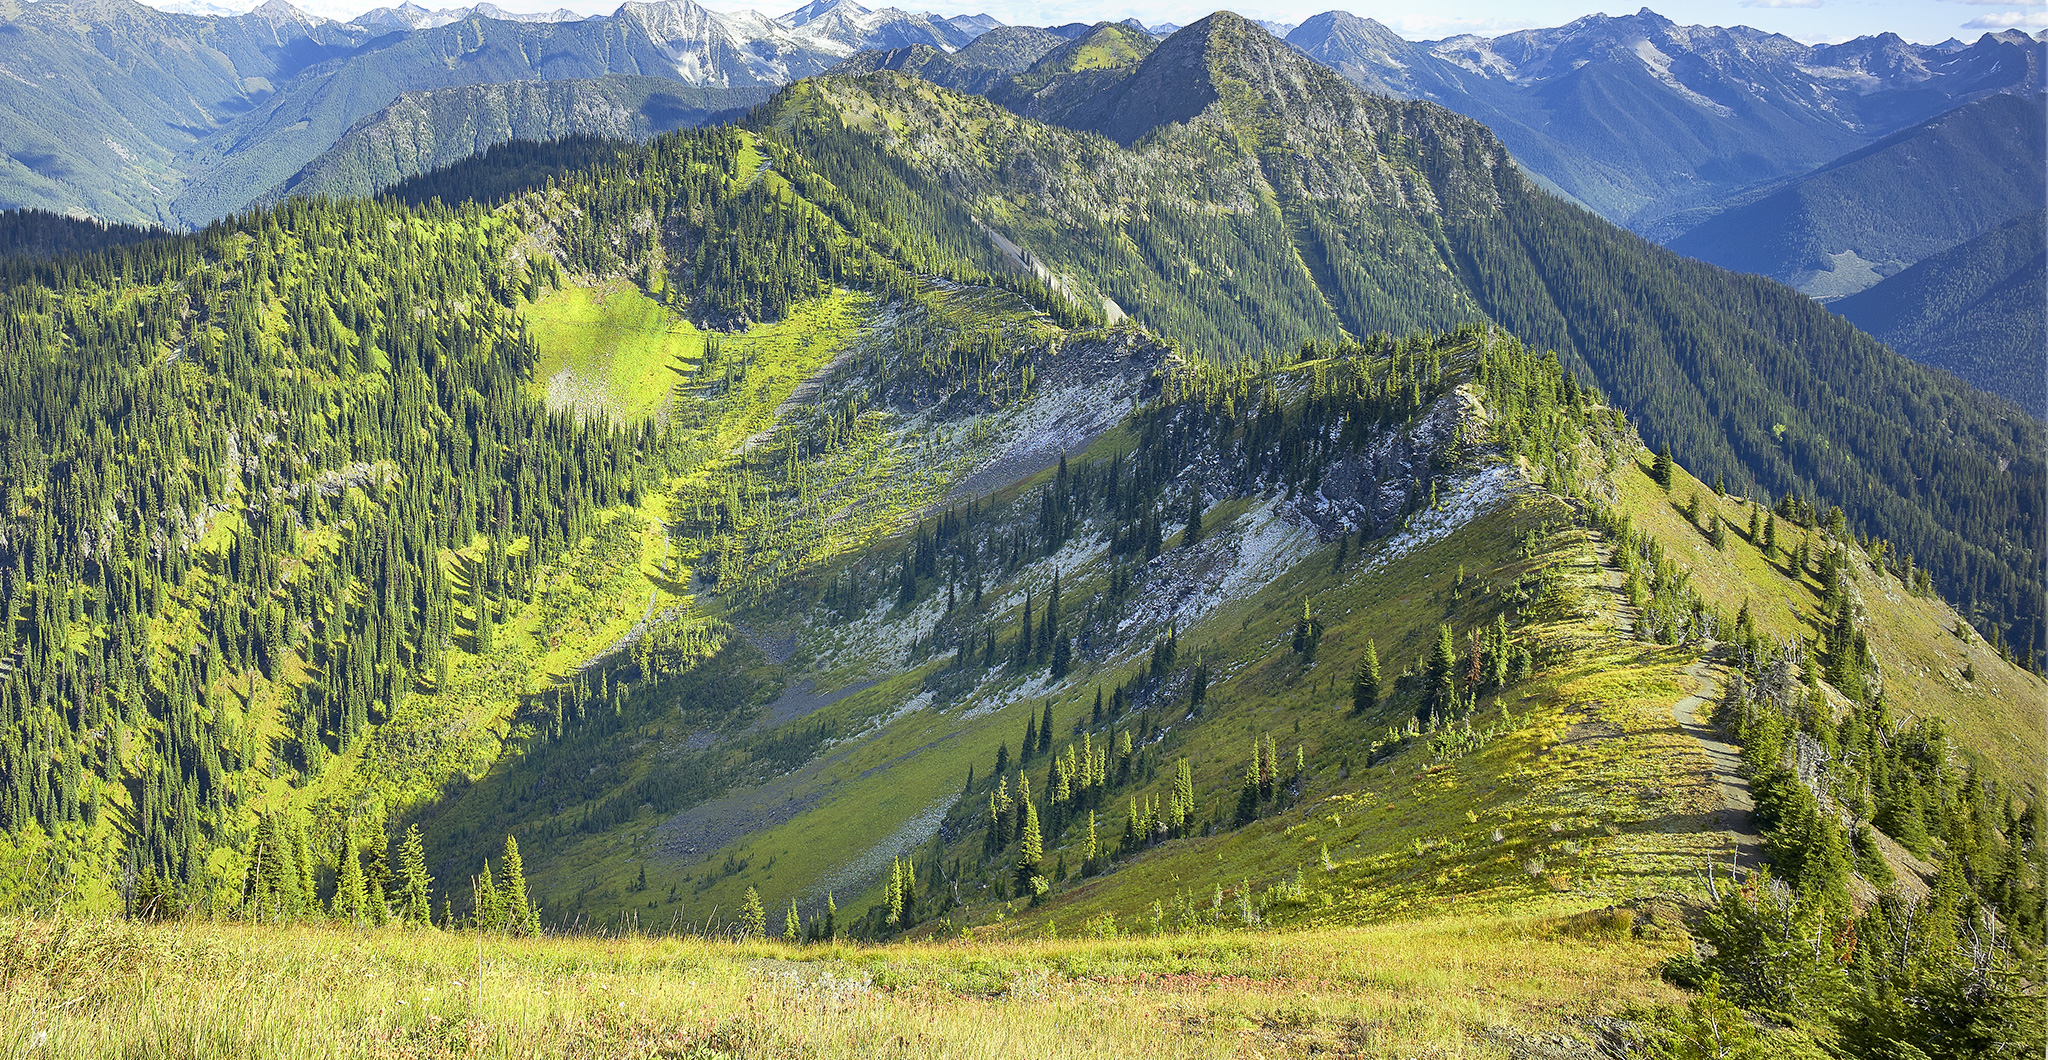 Hiking Idaho Peak near New Denver, BC